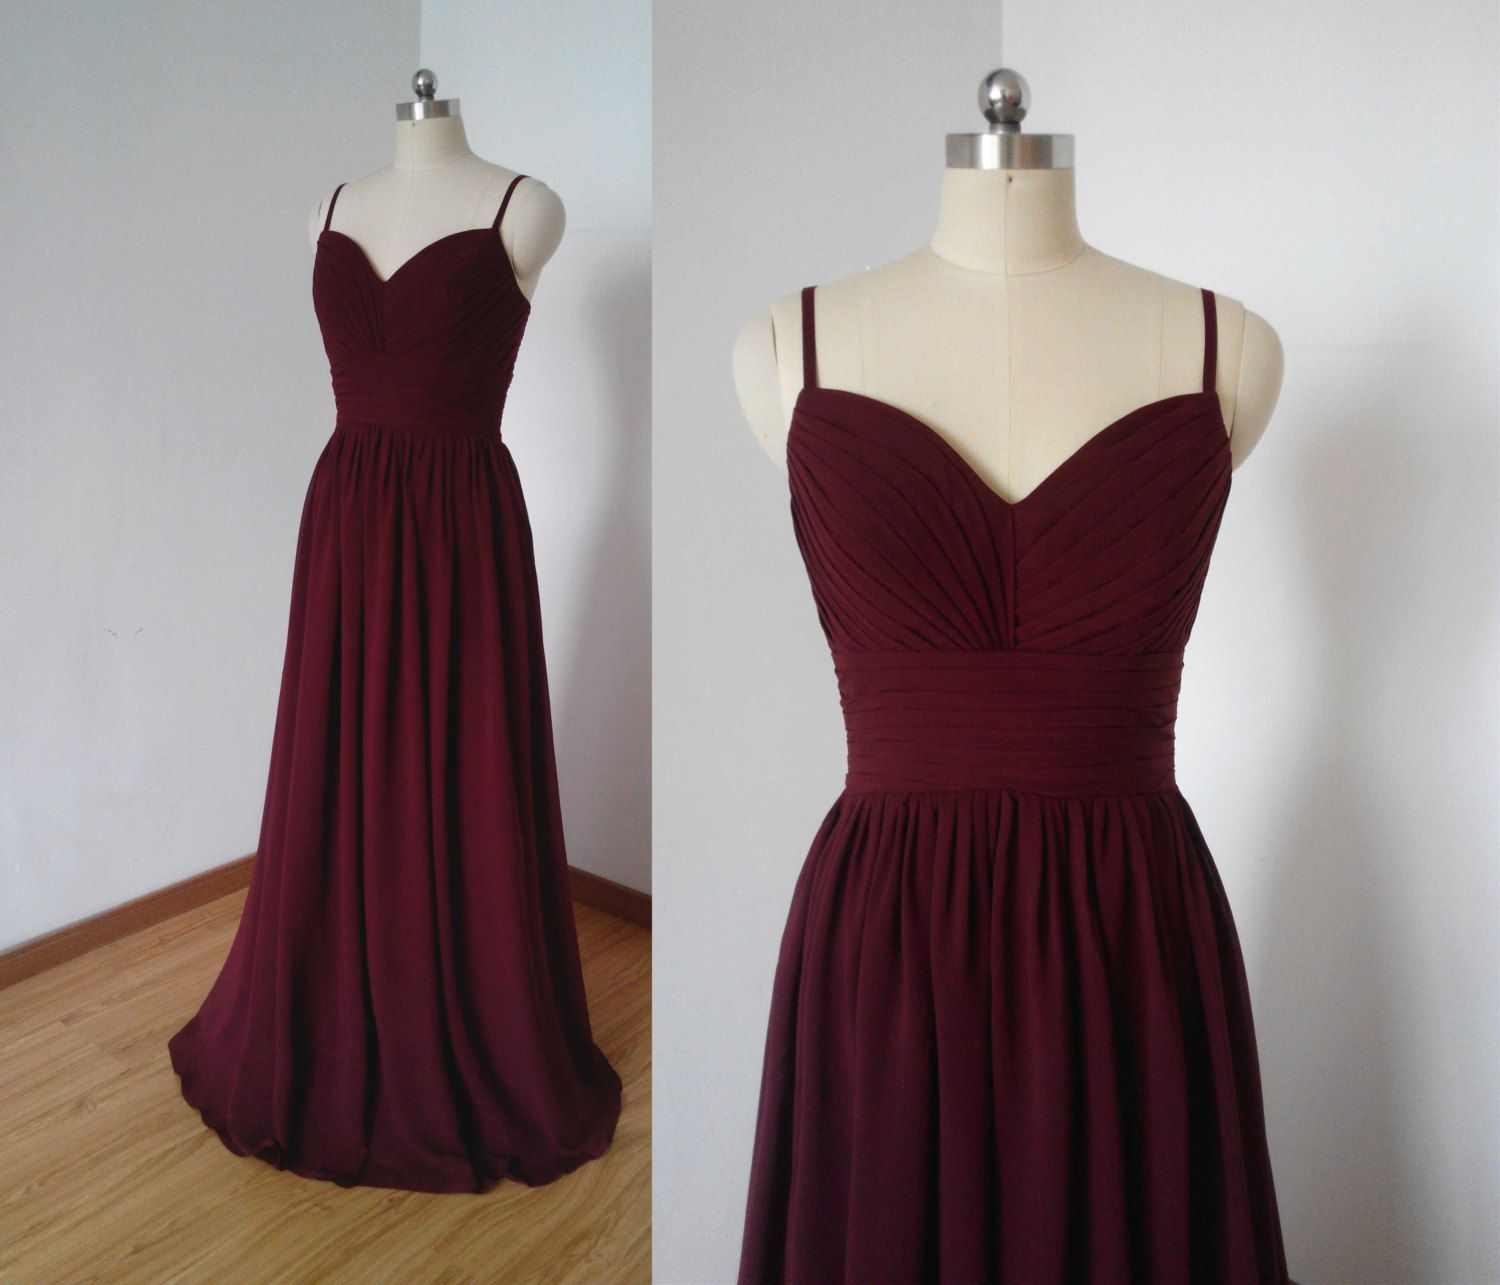 Spaghettiträger Burgund Chiffon Long Bridesmaid Dress (mit Bildern